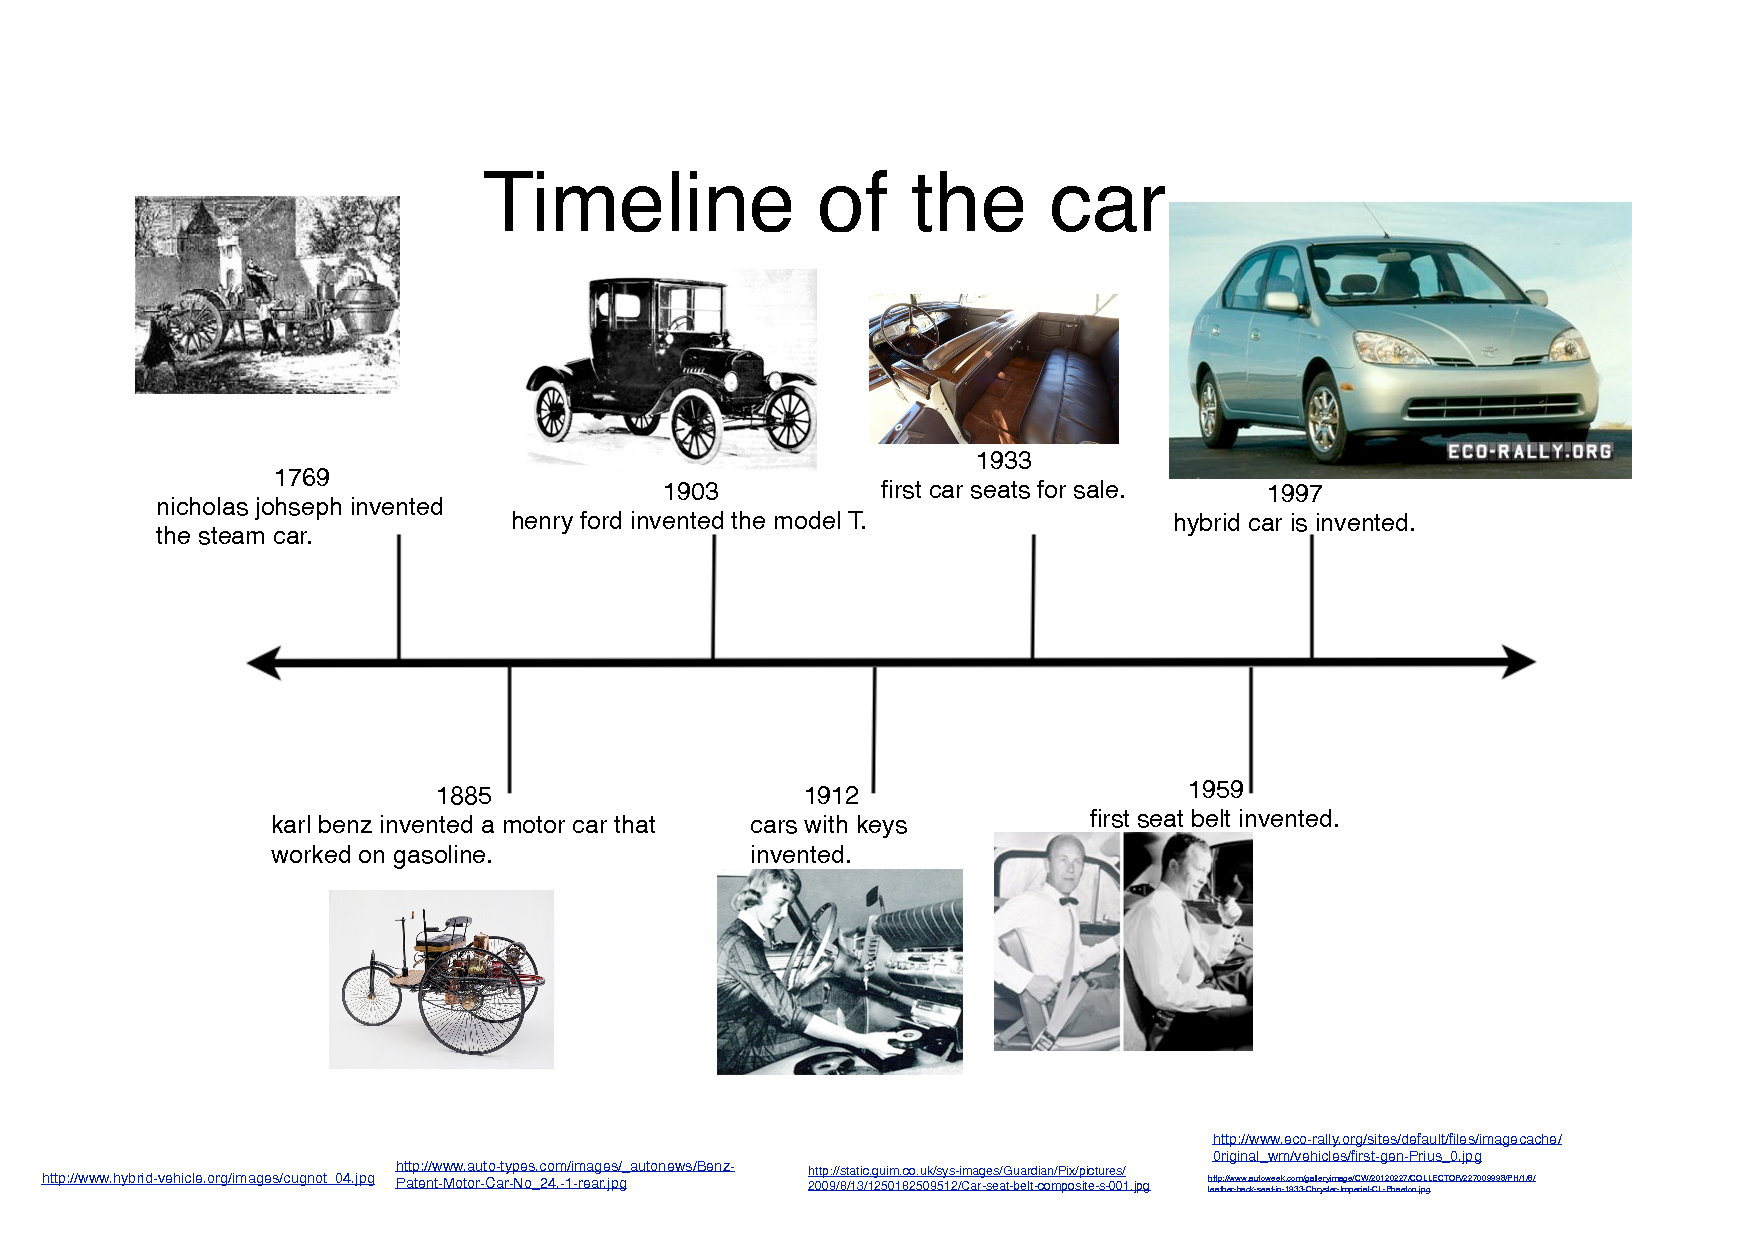 history of the automobile History of automobiles prepared by, bhaskar lecturer in automobile department kpt mangalore 12-08-2015 history of automobiles 1.